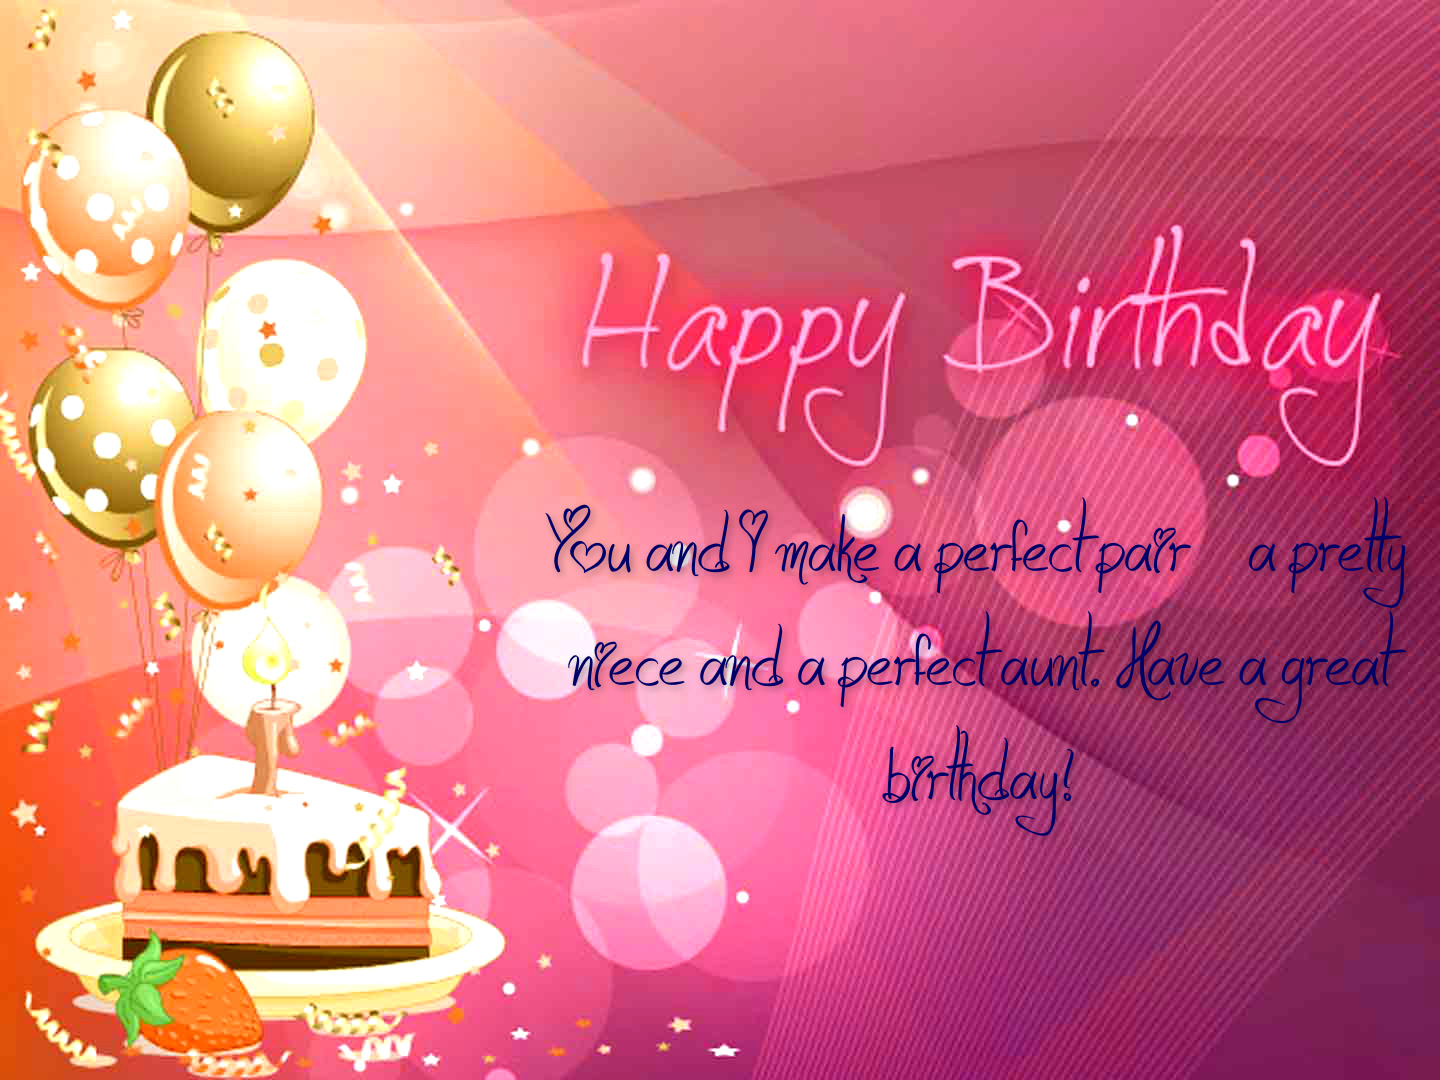 birthday message for uncle tagalog ; Happy-Birthday-Aunt-4